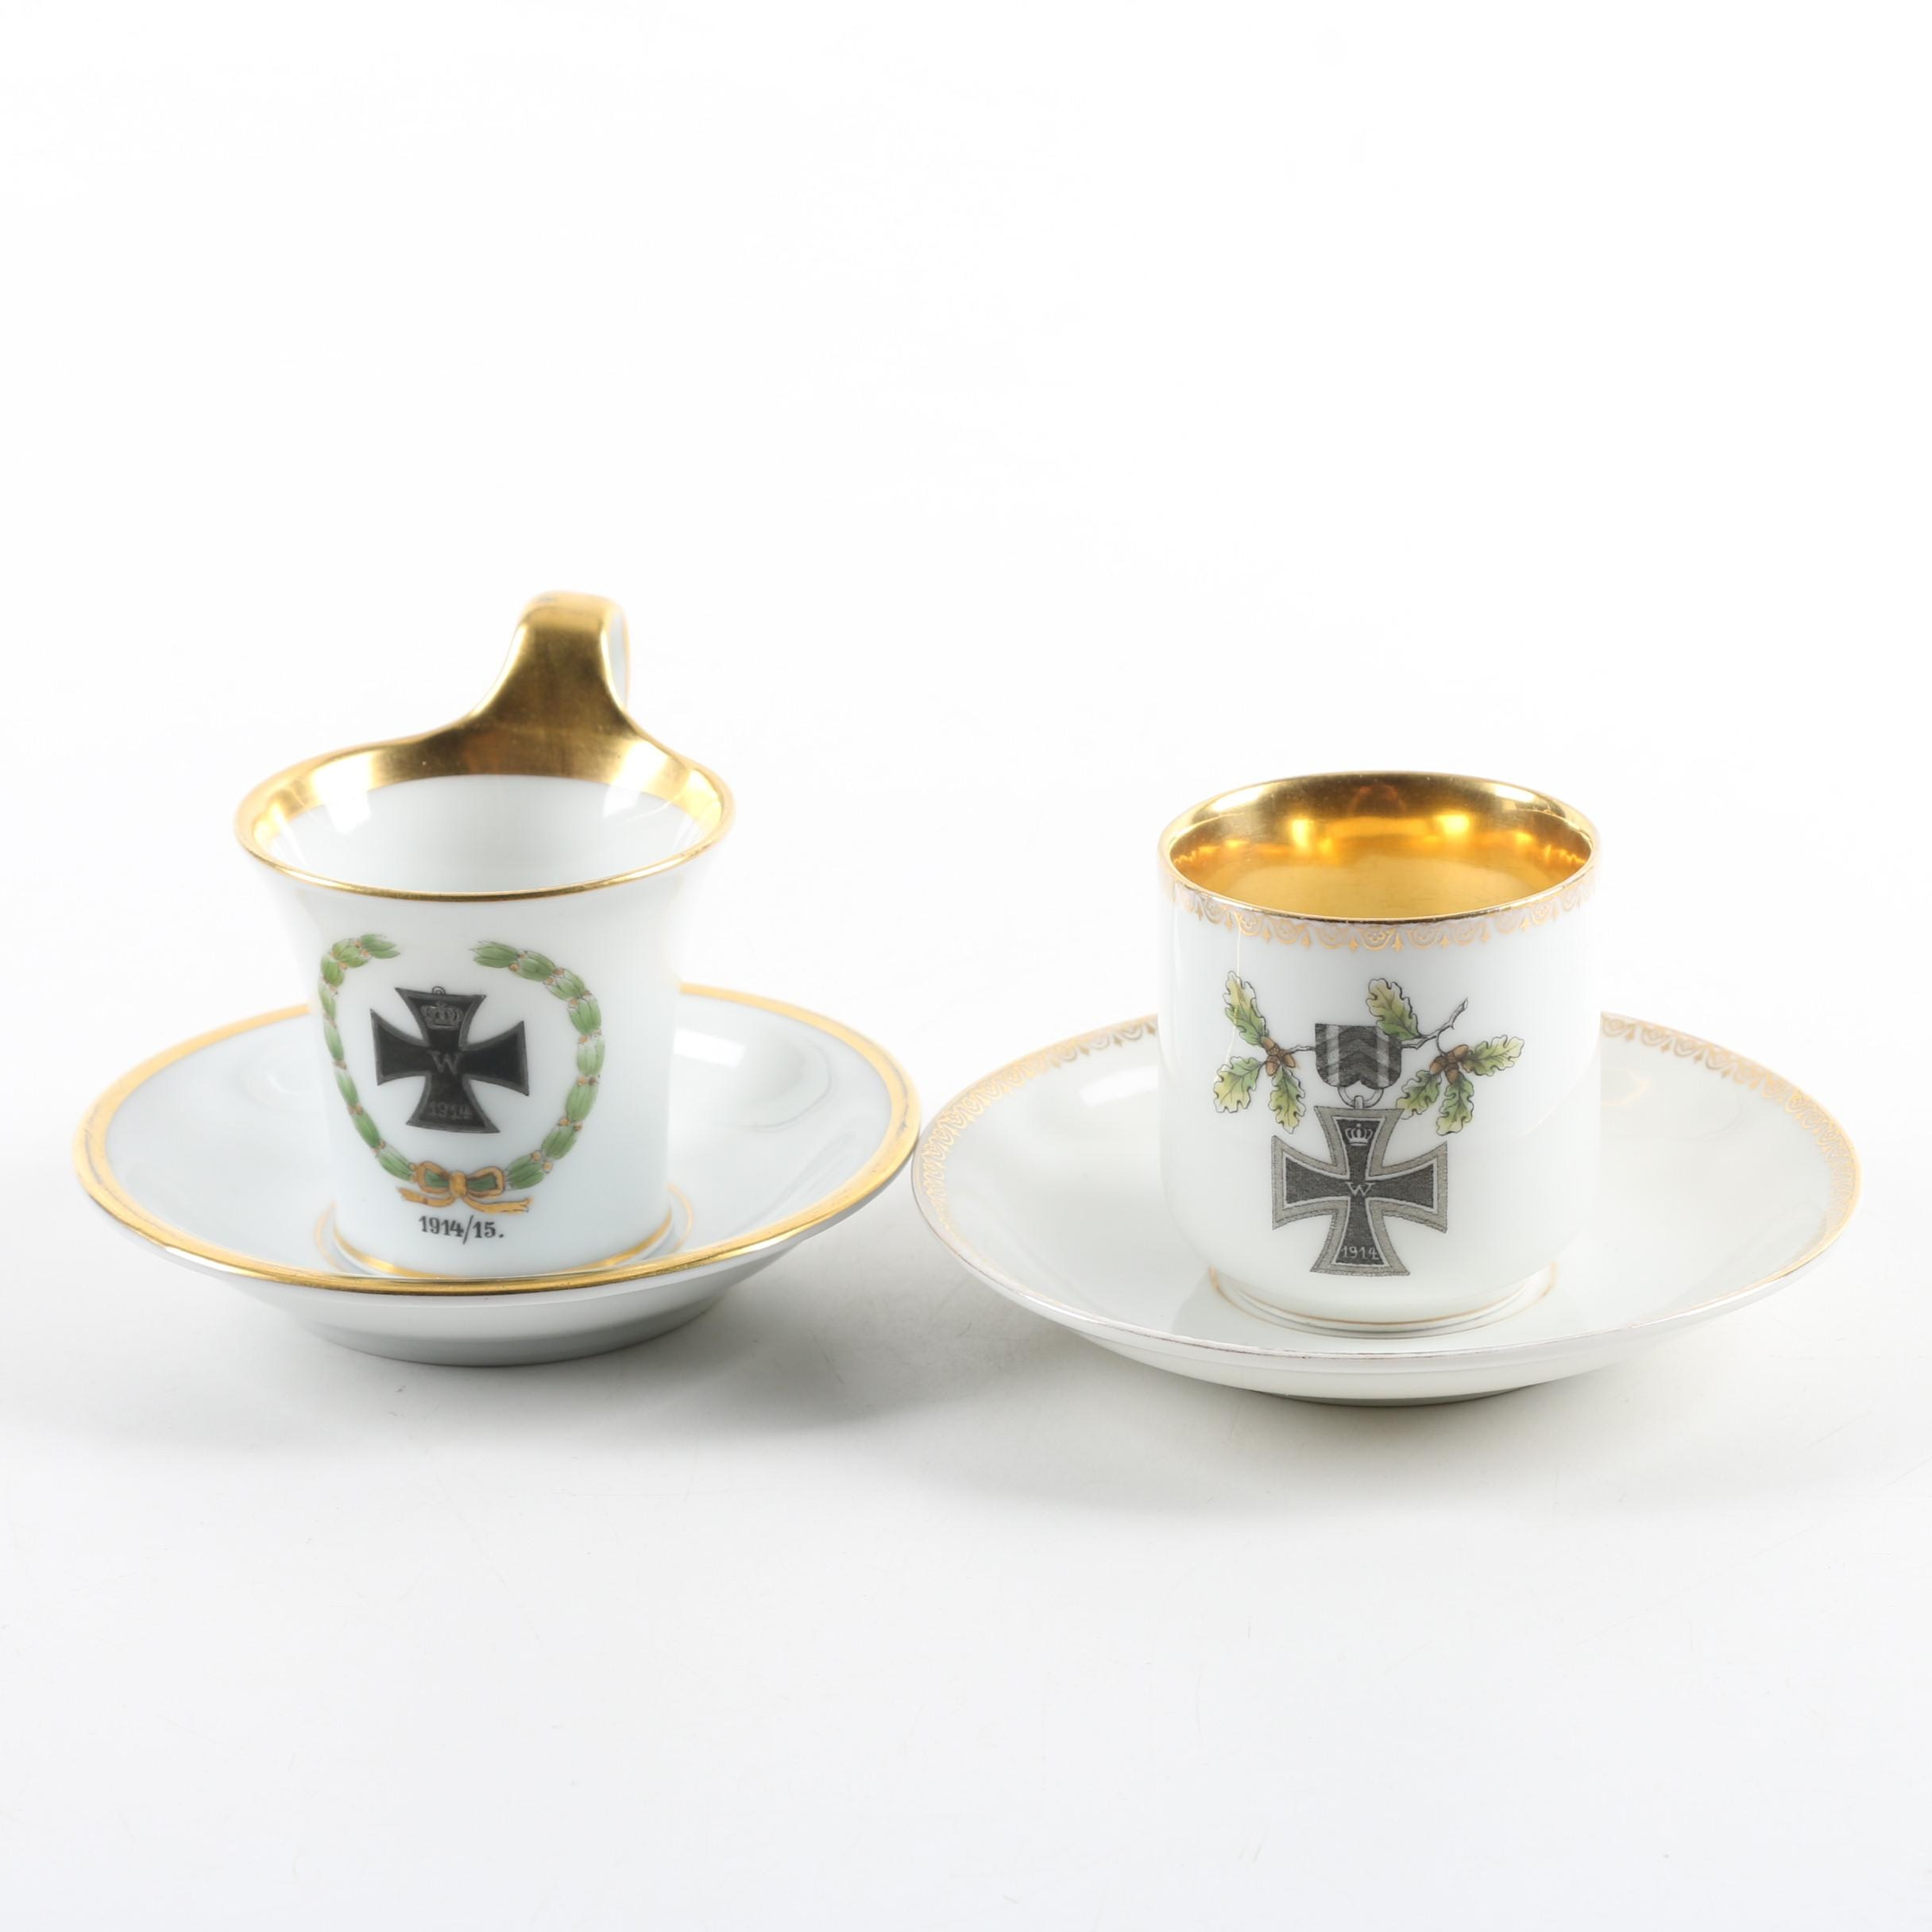 Furstenberg and Krister World War One Prussian Porcelain Teacups and Saucers